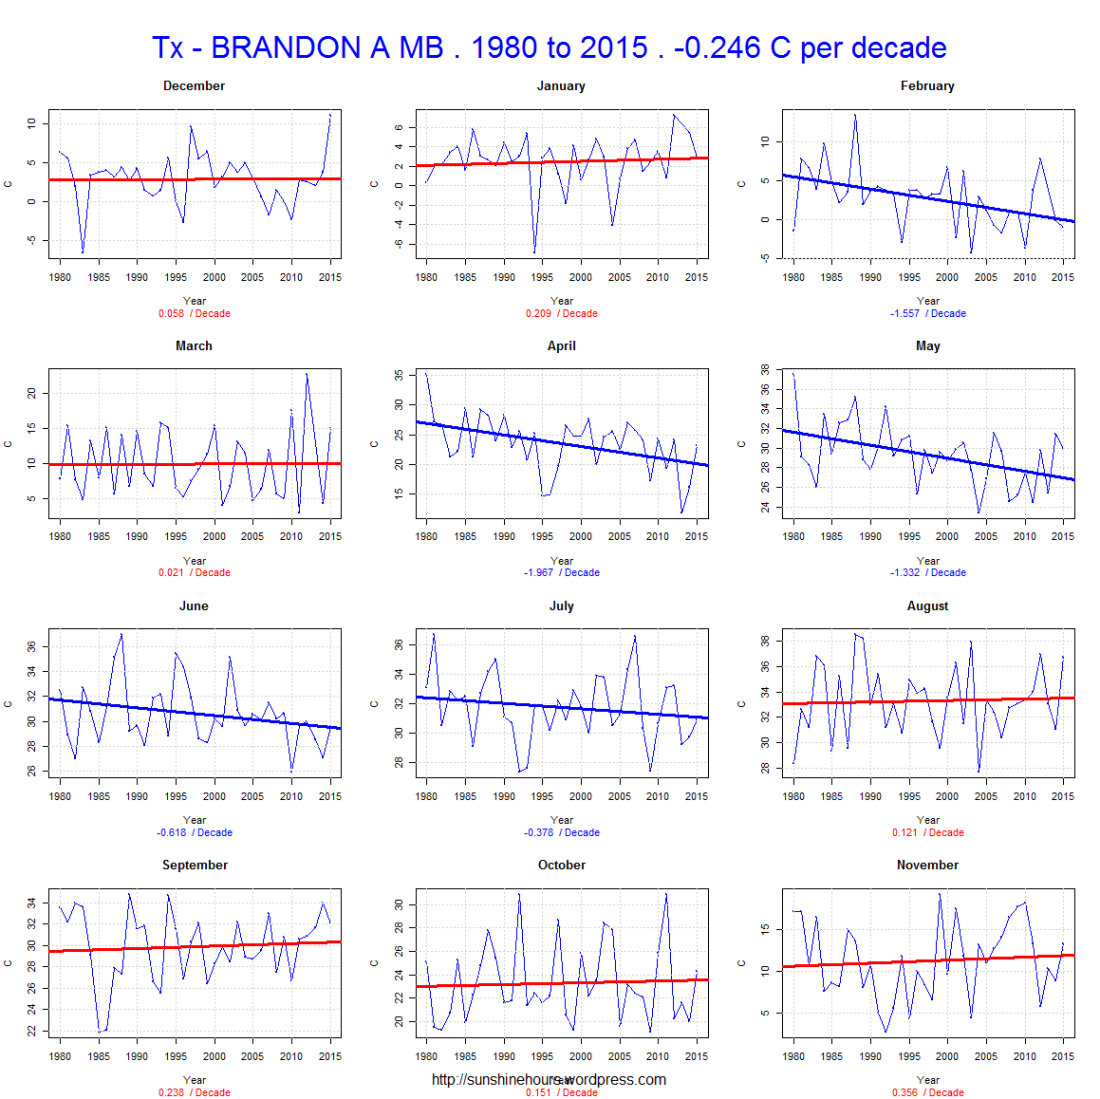 Tx - BRANDON A MB . 1980 to 2015 . -0.246 C per decade